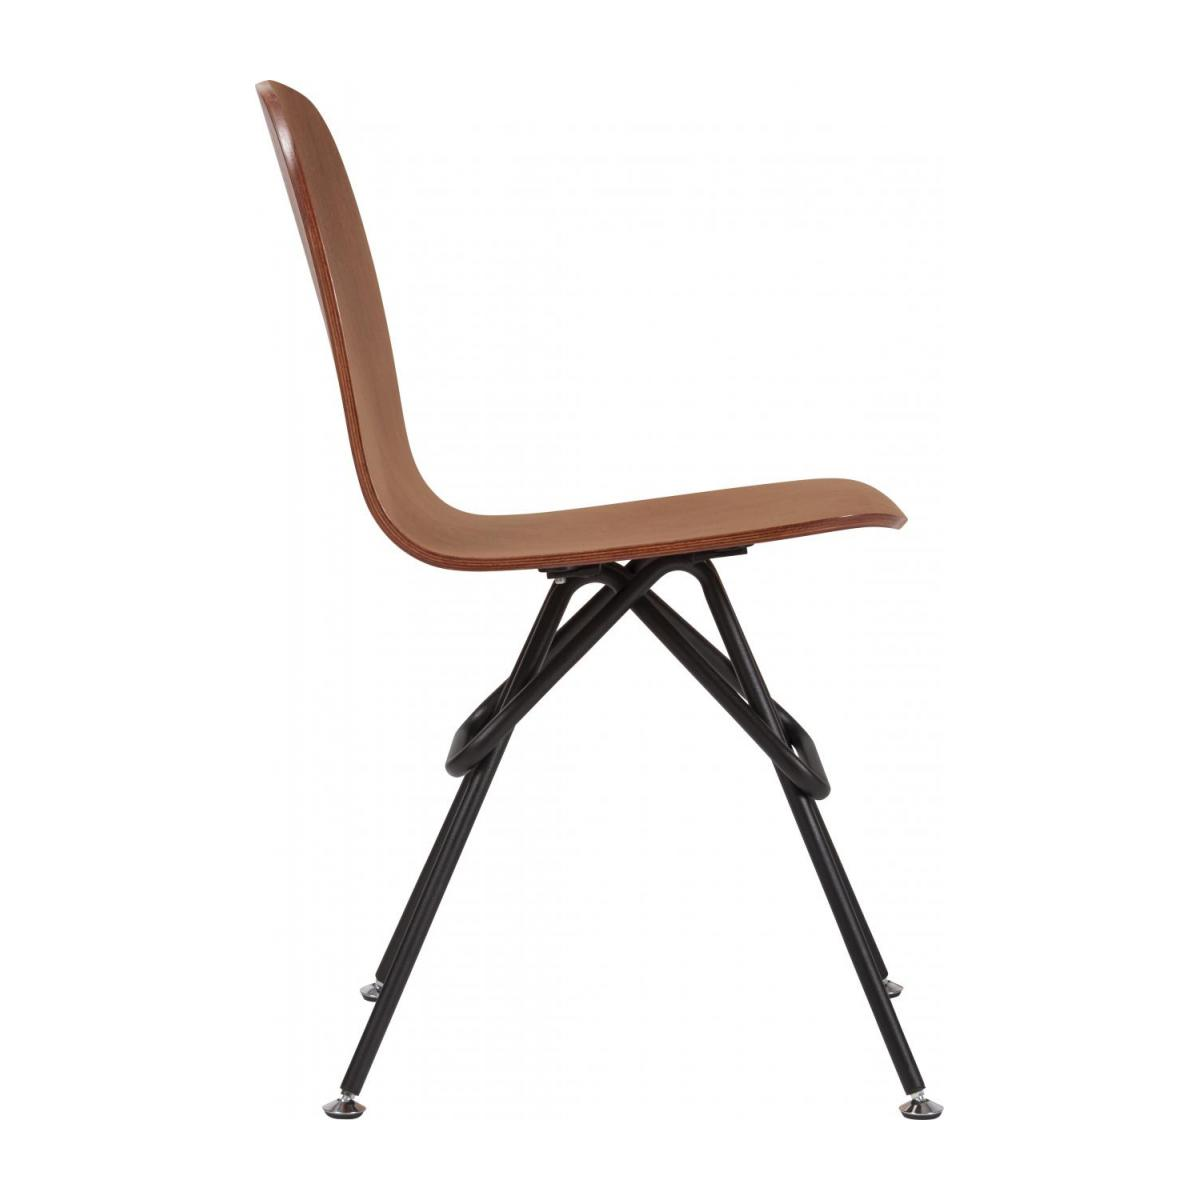 Walnut chair and black steel legs n°5